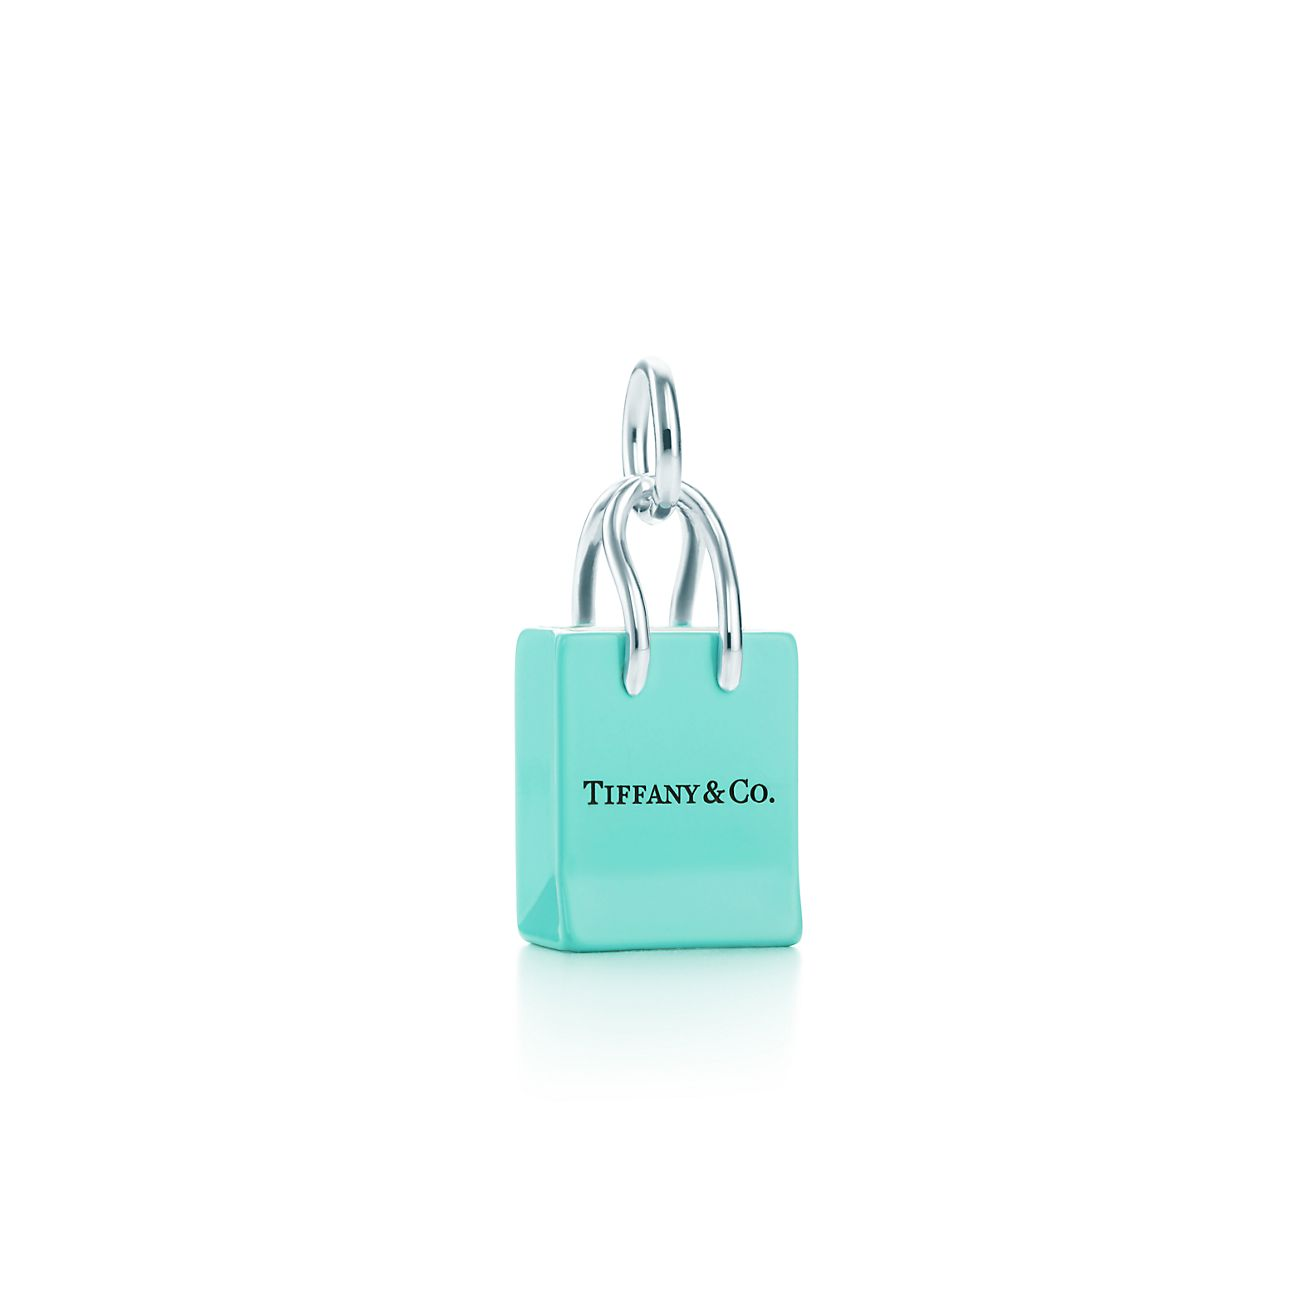 Tiffany & Co.® Shopping bag charm in sterling silver with enamel ...